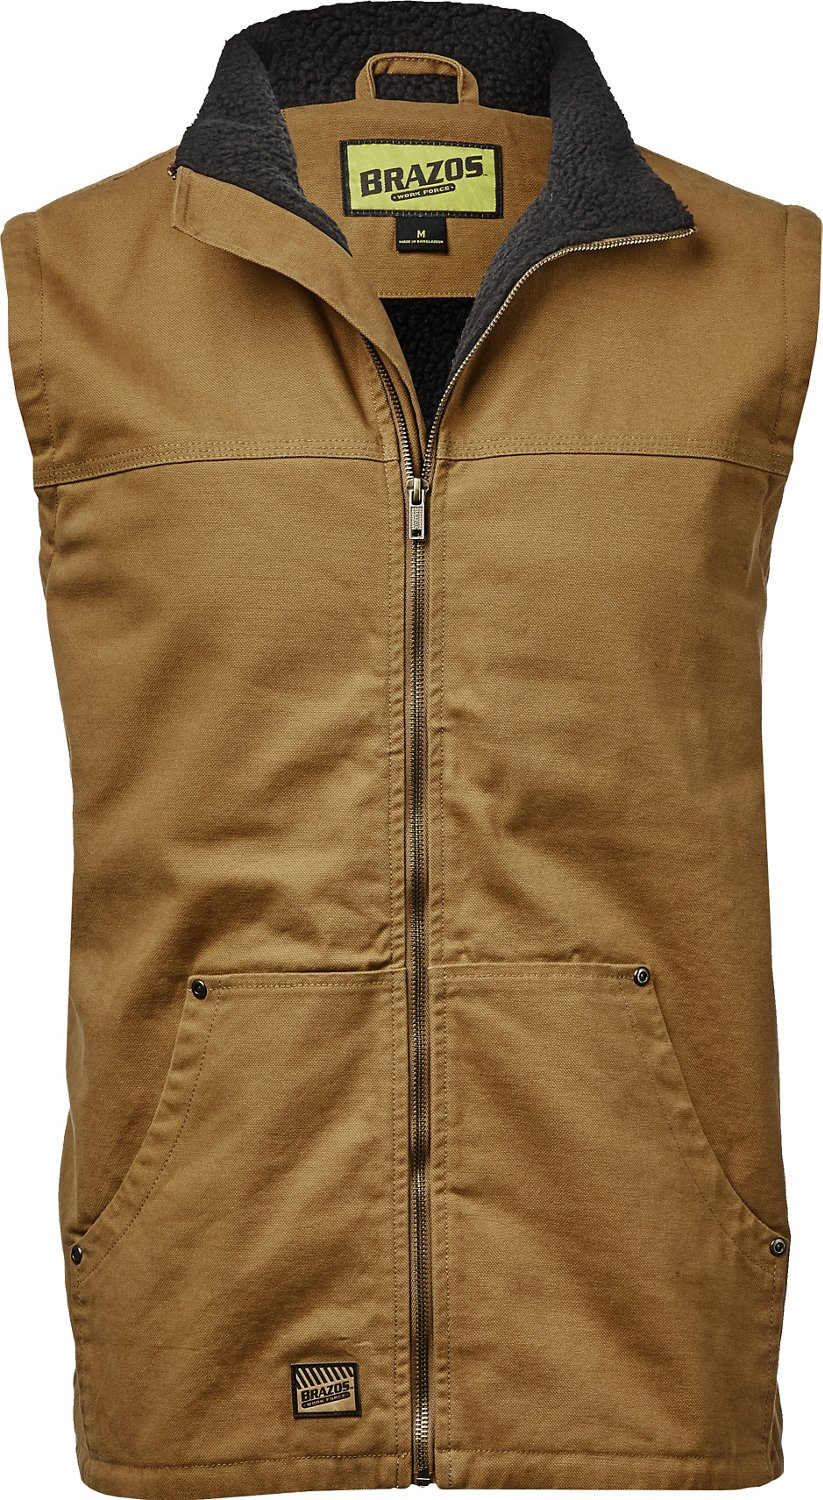 474b383e9b1f11 Display product reviews for Brazos Men s Gate Keeper Full Zip Vest This  product is currently selected